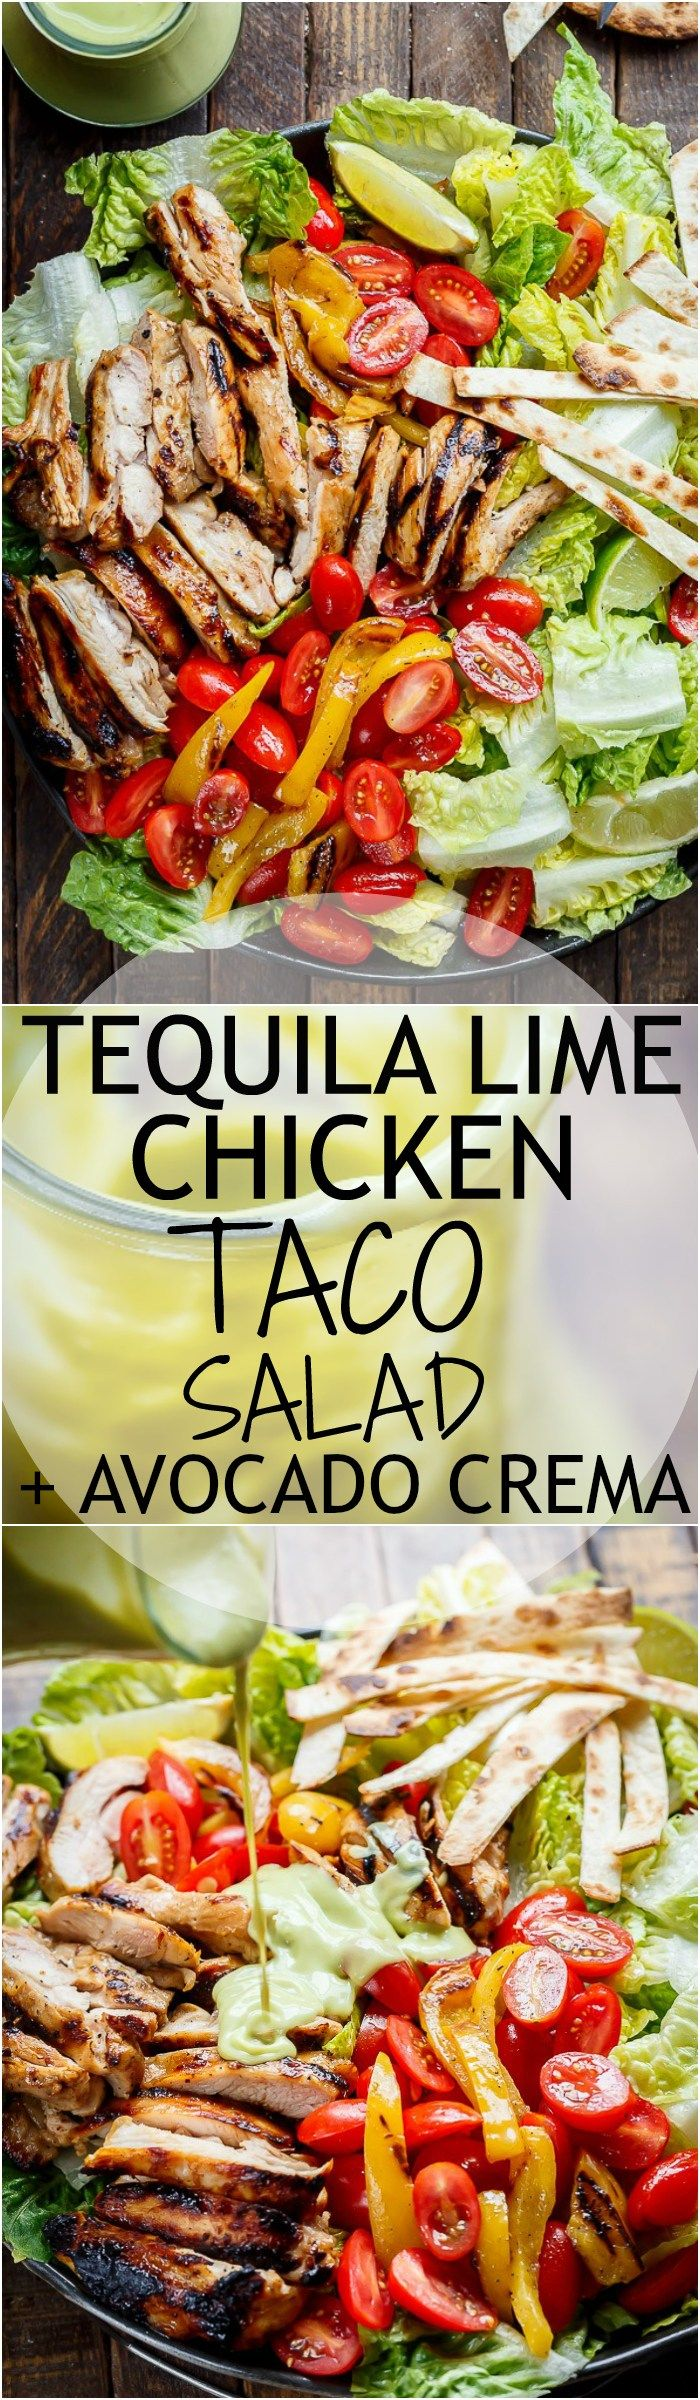 Tequila Lime Chicken Taco Salad with an Avocado Crema